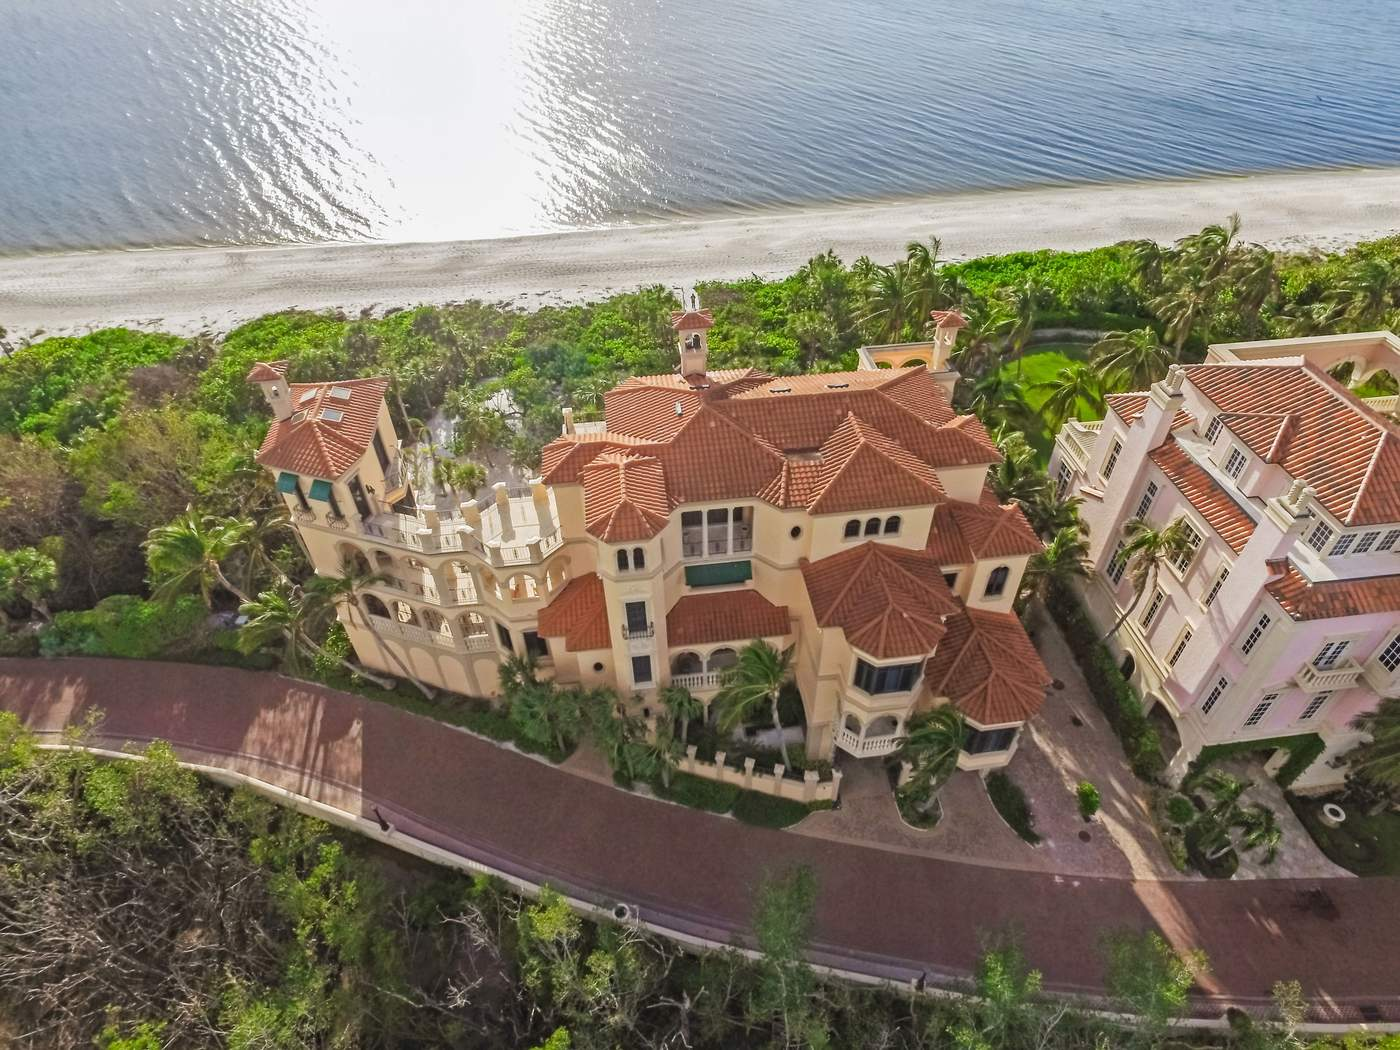 7607 Bay Colony DrivePrice: $19.975 millionAgent: Joe BelzThe beach is just a few steps from this 9,775-square-foot Mediterranean-style home, which is part of the secluded community of the Strand at Bay Colony. Sitting on more than an acre of land, the four-bedroom, six-bathroom and two half-bathroom house has views of the Gulf of Mexico, a master suite with a sitting area and fireplace, plus a marble bathroom and several terraces and balconies overlooking the water. Part of living at Bay Colony is access to its amenities, like the remodeled beach club, a beachfront pool, tennis courts and optional membership to one of of two golf courses.